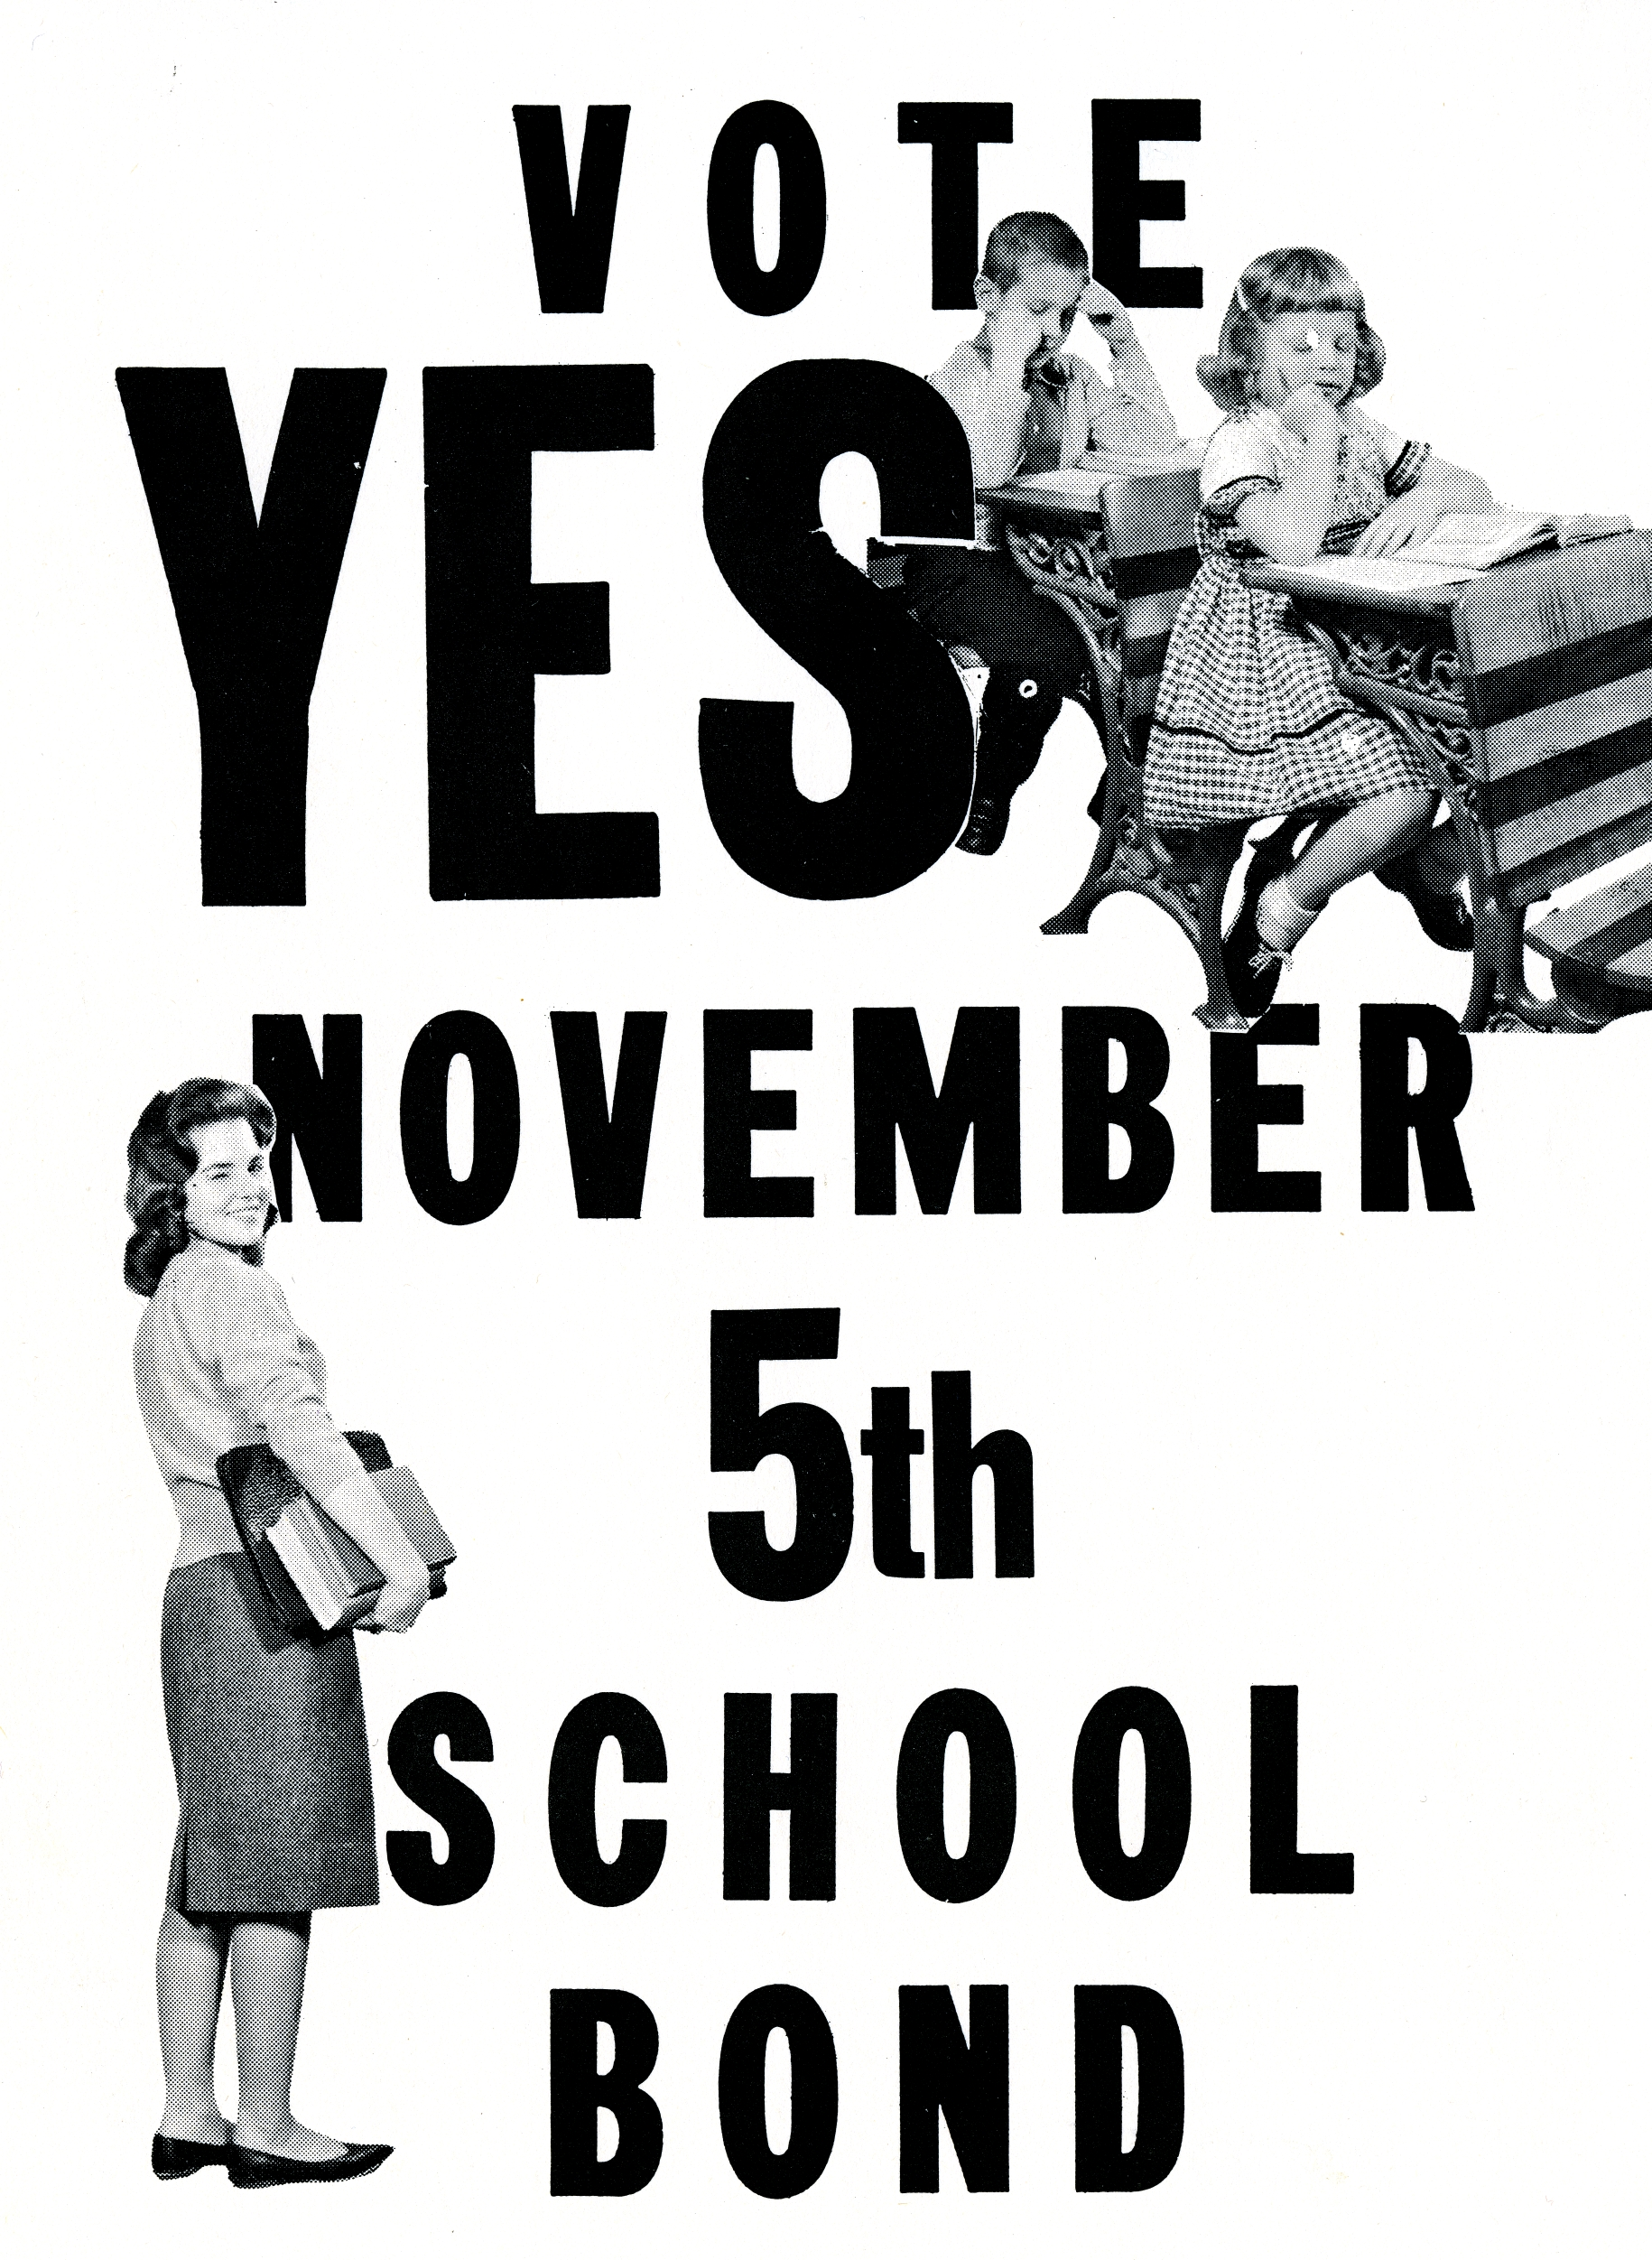 Vote YES November 5th, school bond.